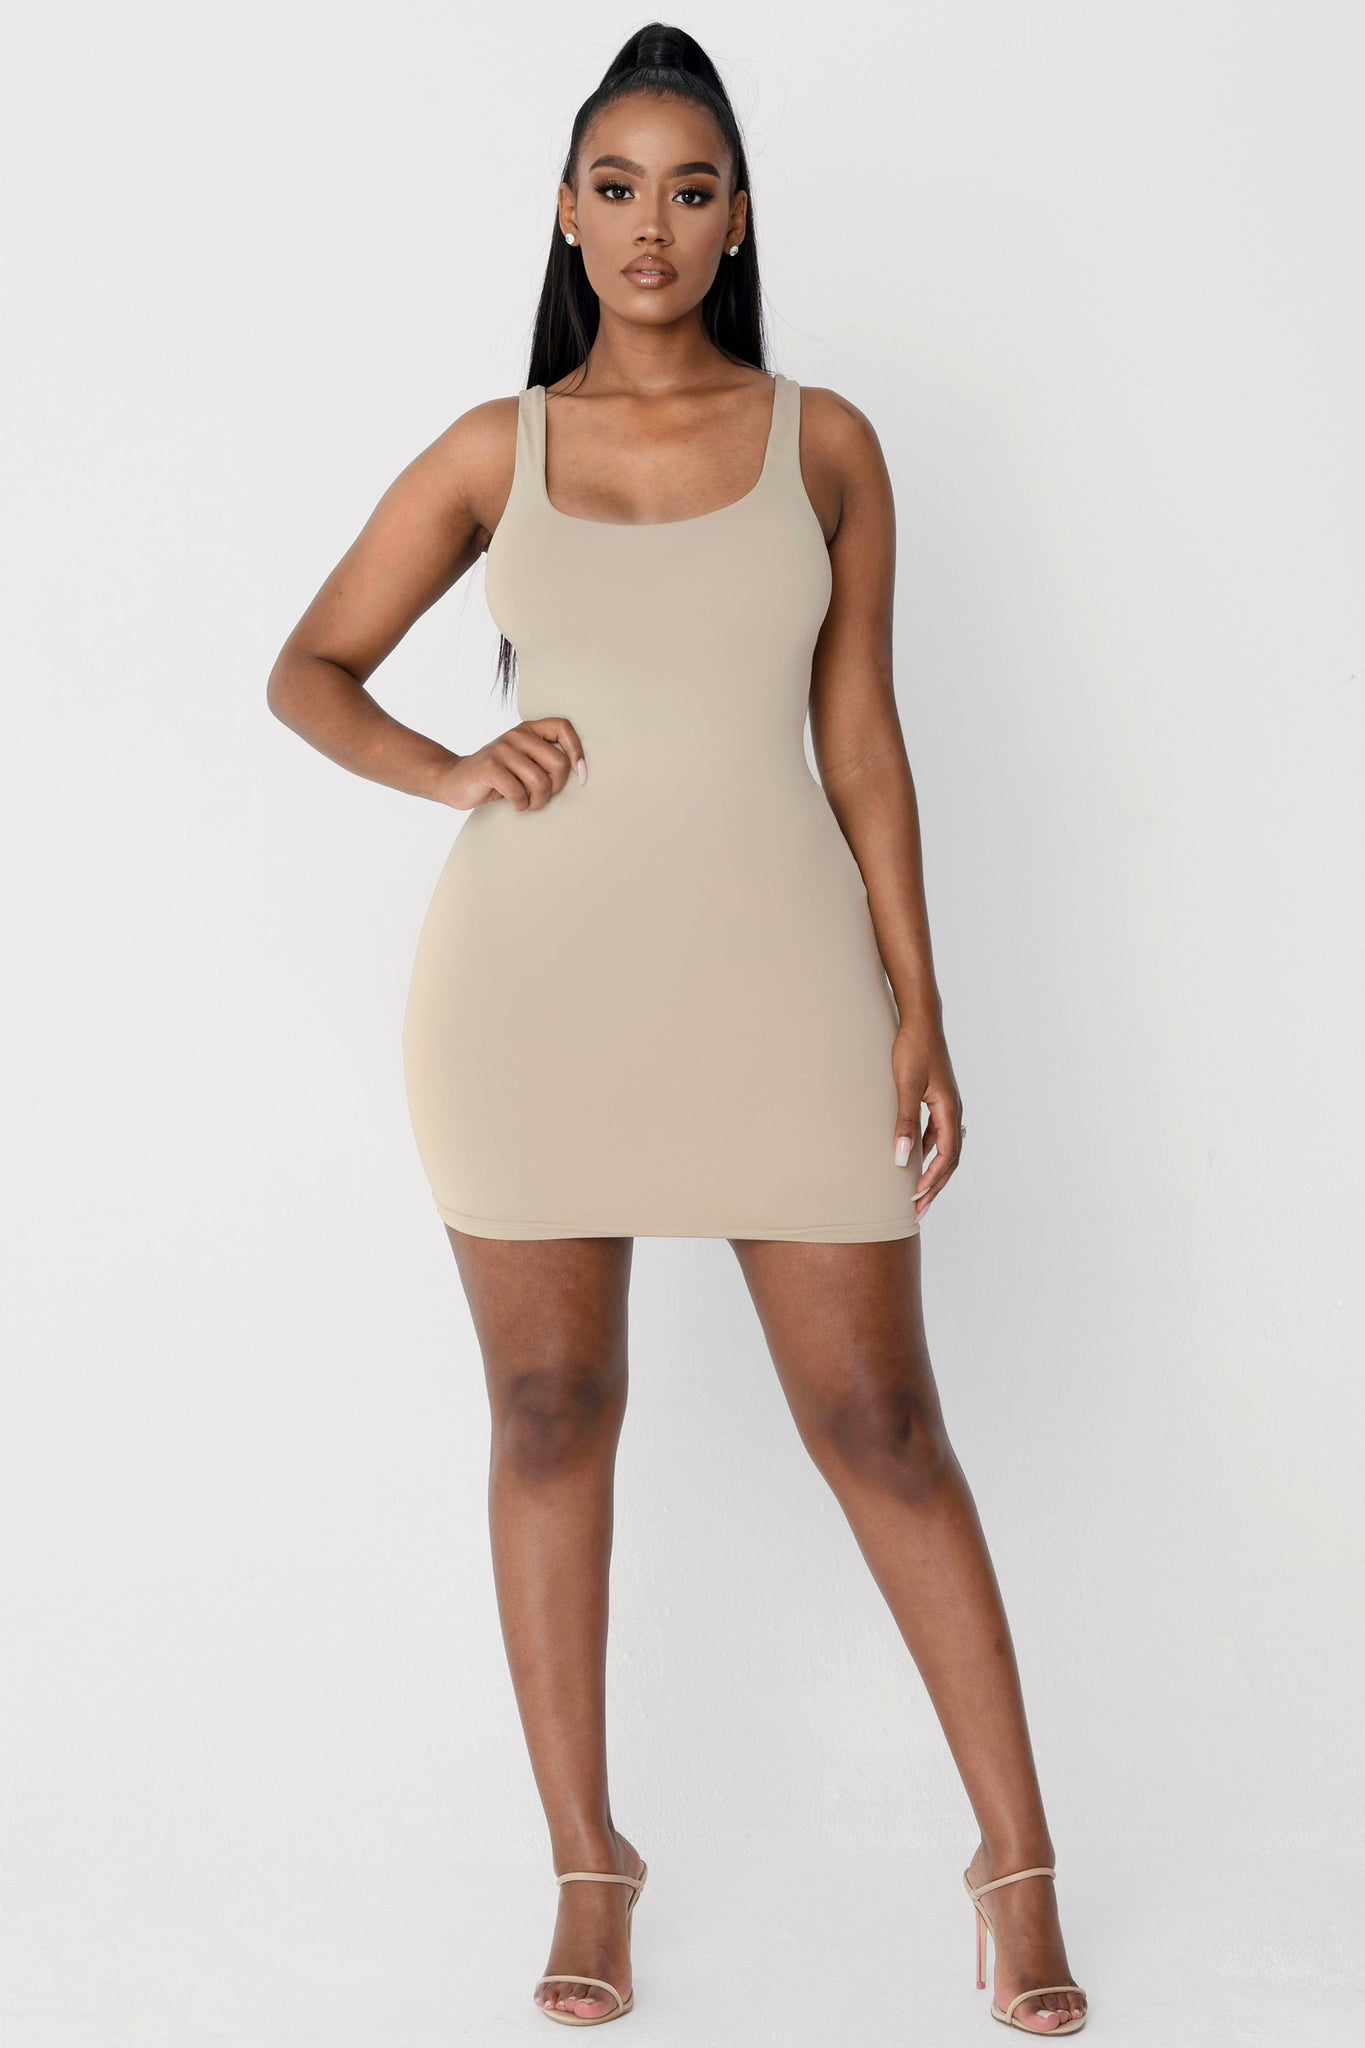 Estelle Thick Strap Square Neck Mini Dress - Almond - MESHKI